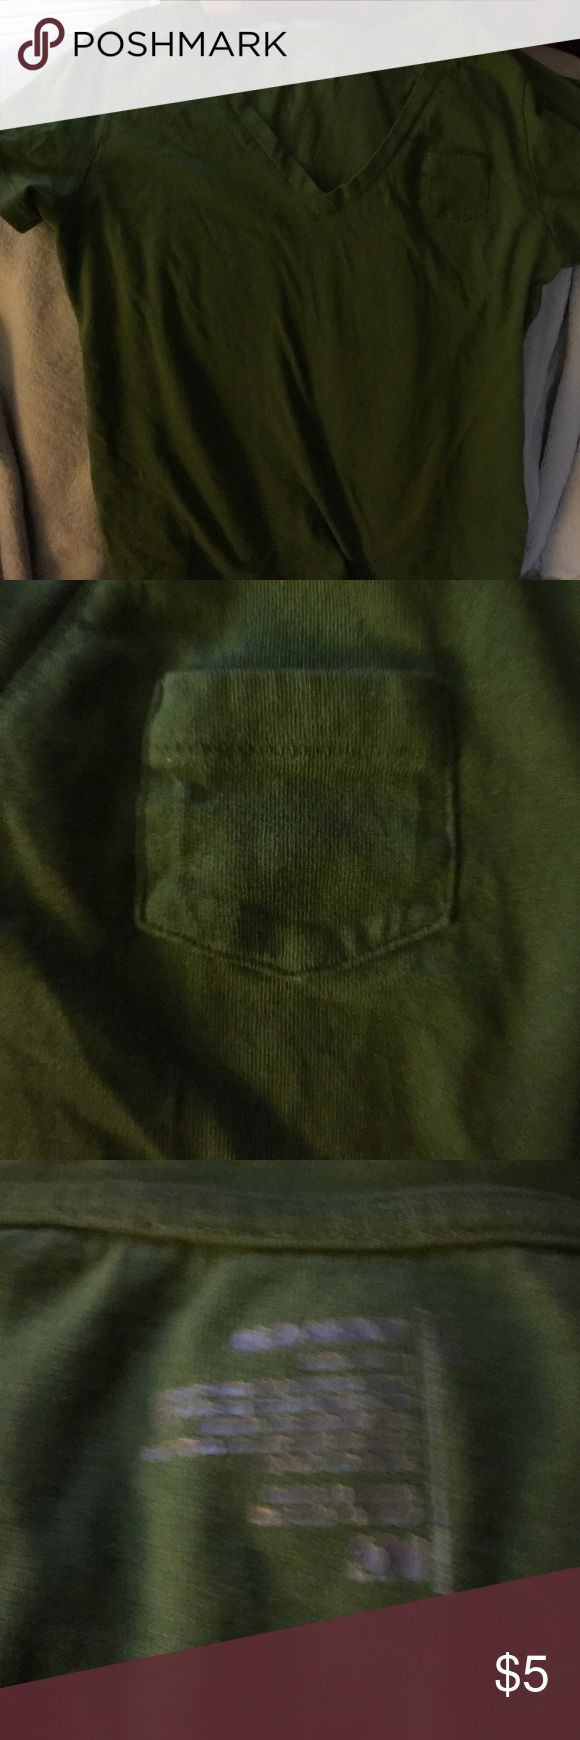 Old Navy tee shirt Green Old Navy tee shirt with a small pocket on the left side. Old Navy Tops Tees - Short Sleeve